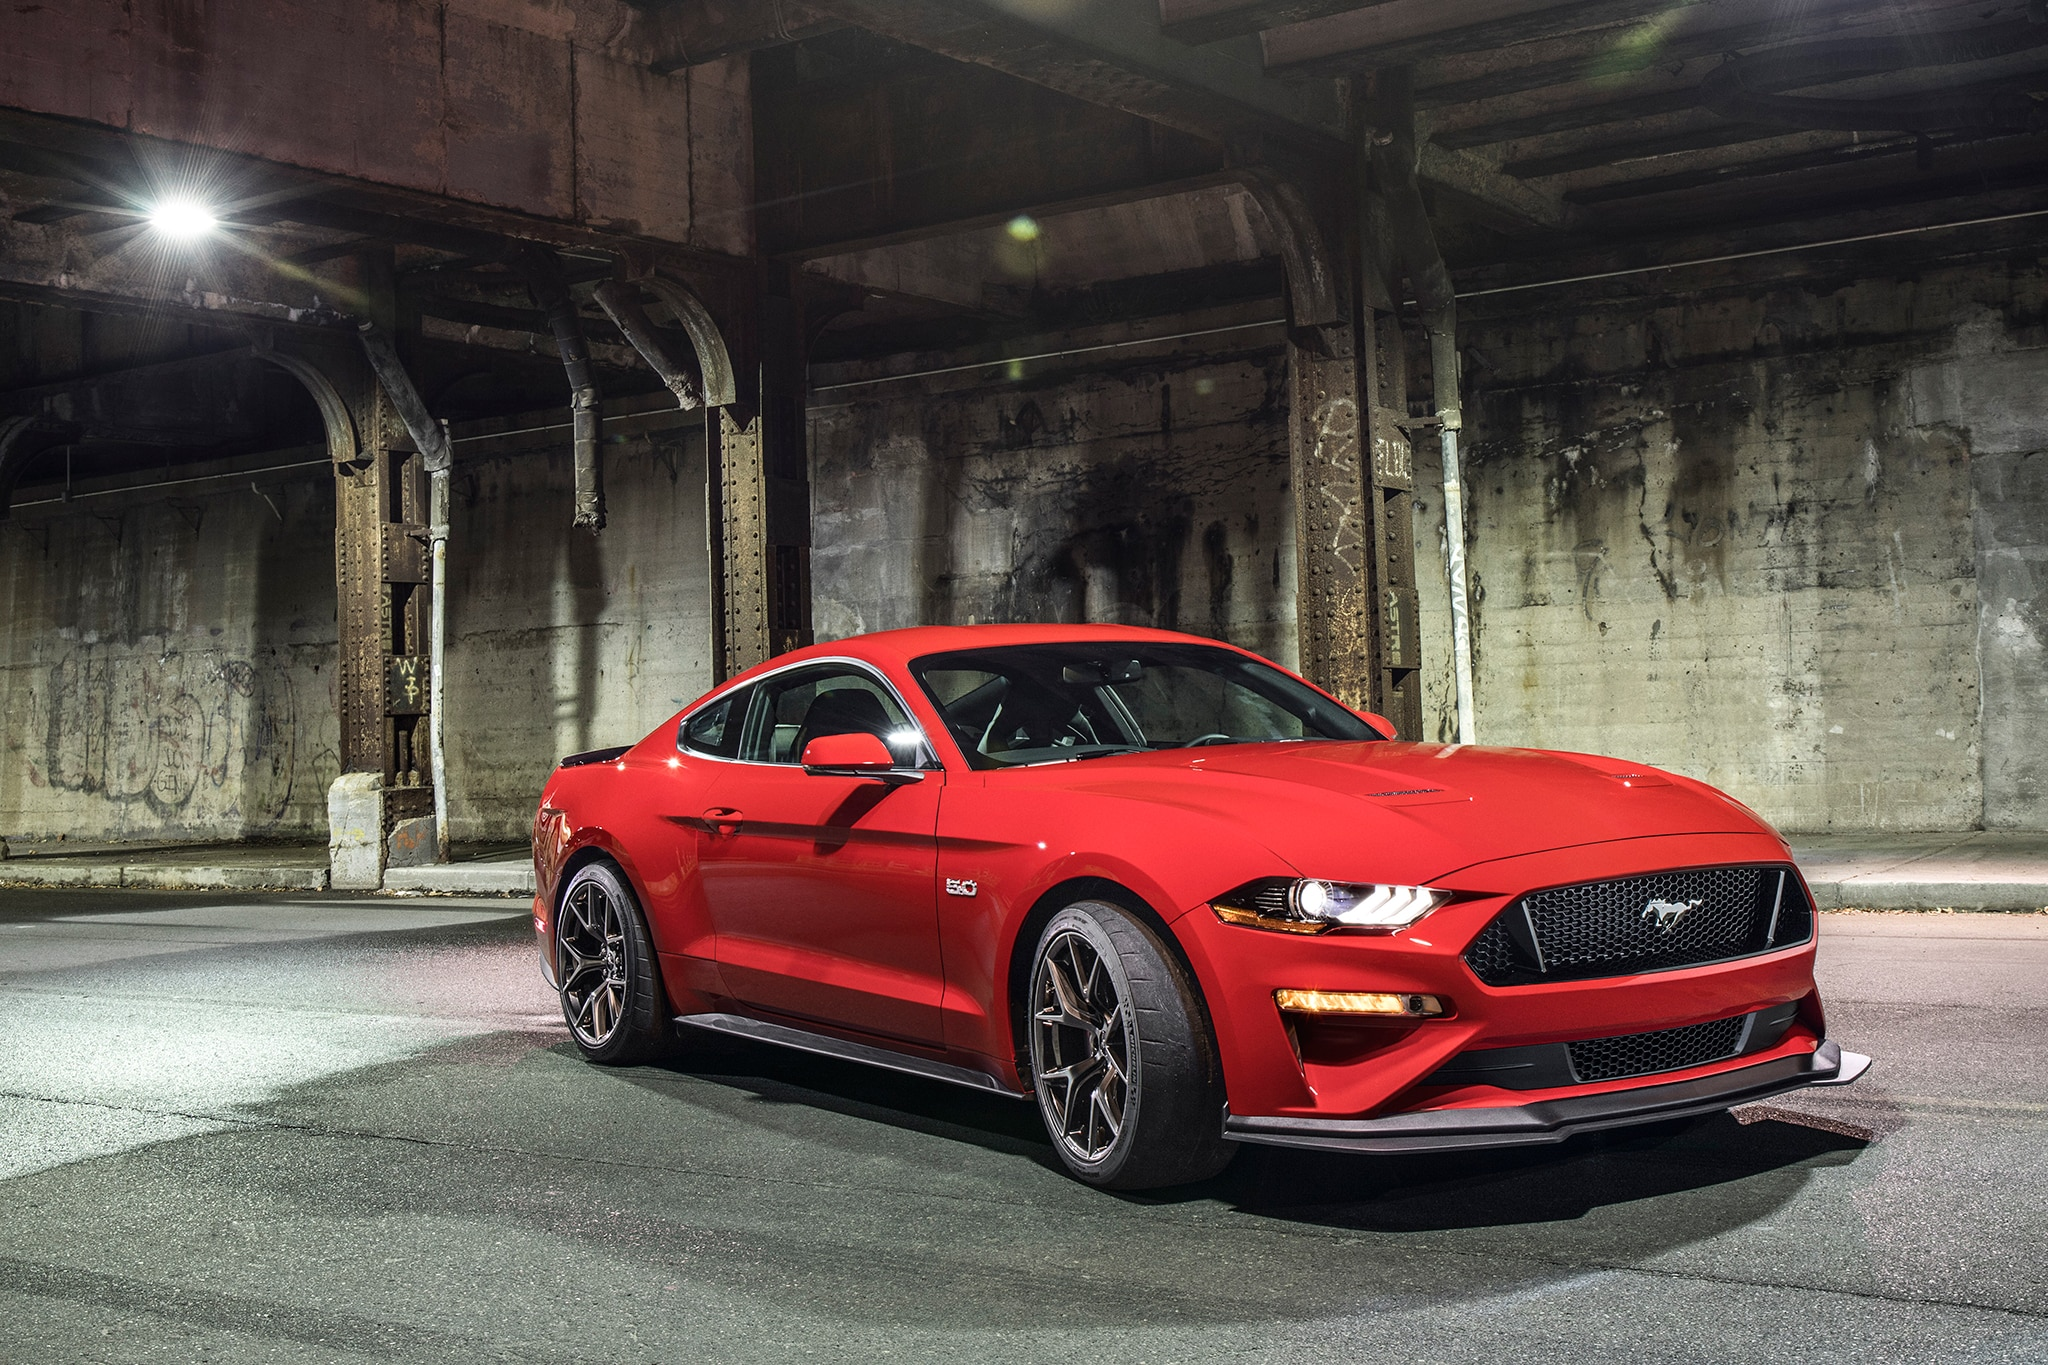 2018 Ford Mustang Performance Pack Level 2 Front Three Quarter 04